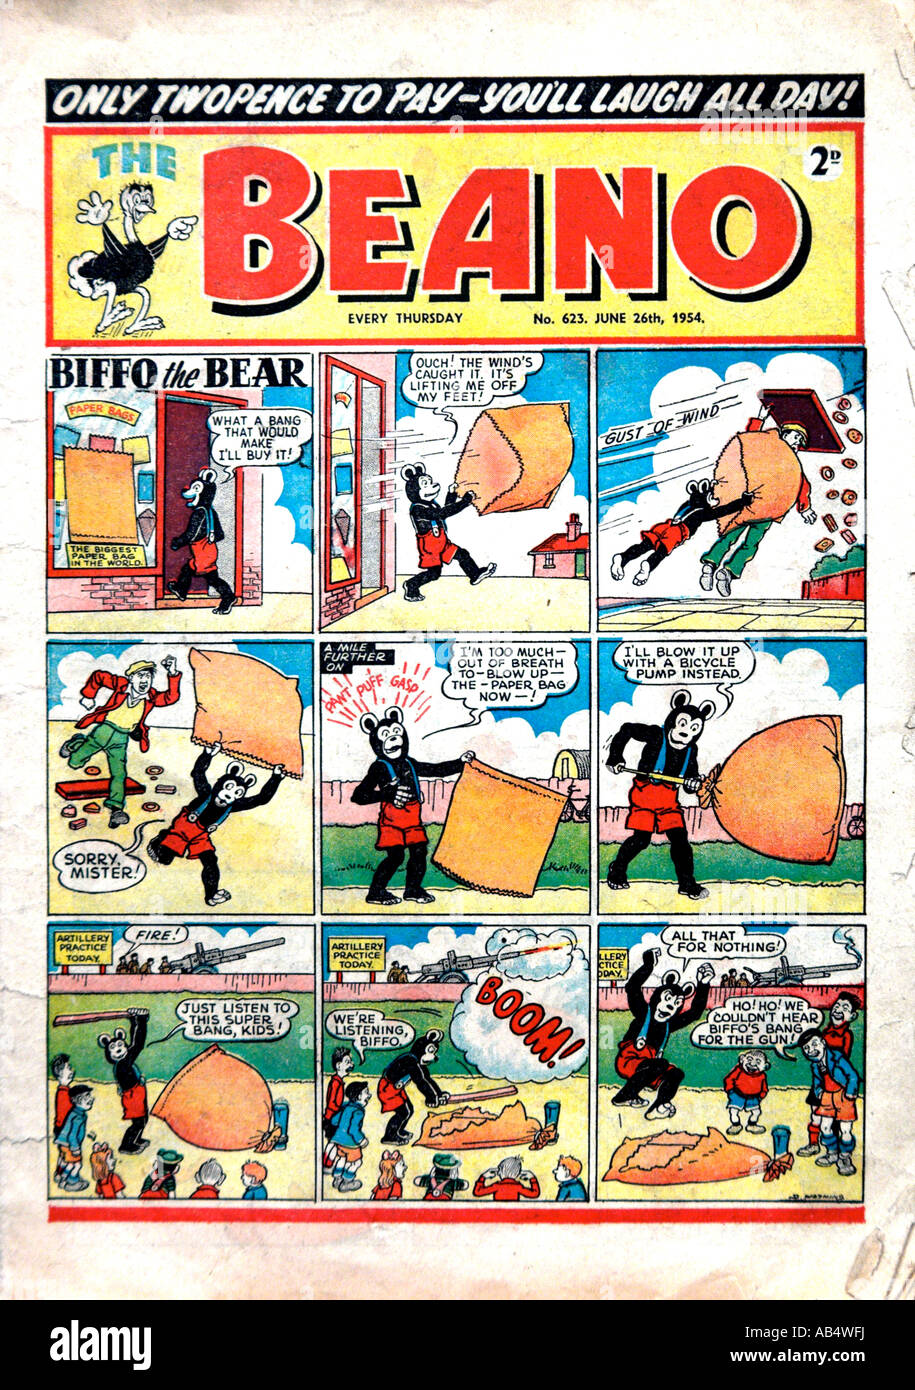 Beano Comic 26 juin 1954 pour un usage éditorial uniquement Photo Stock